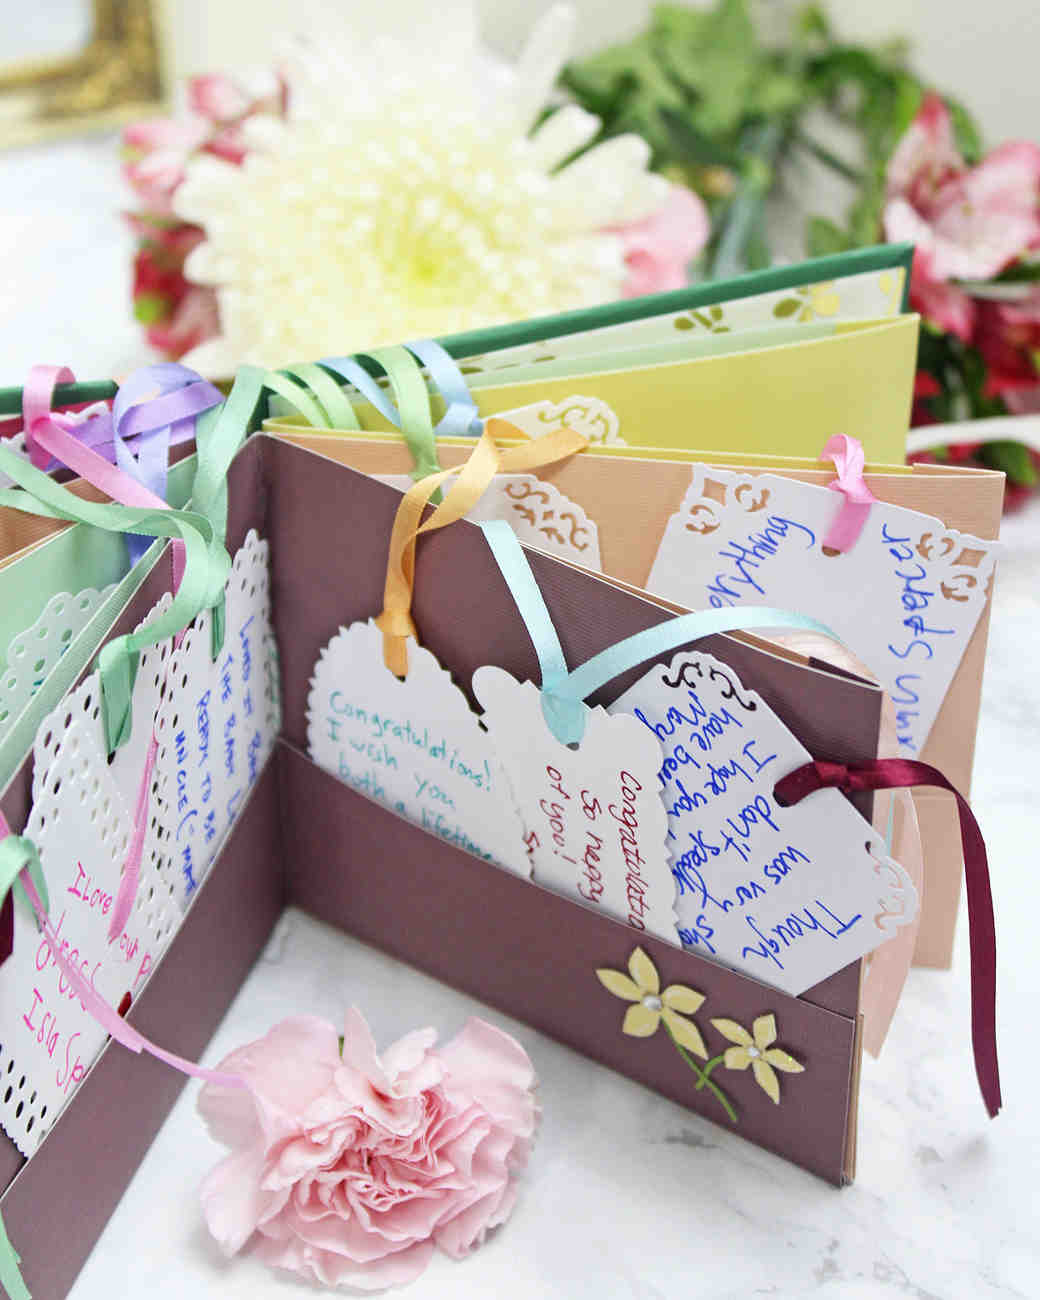 Make Your Own Botanical-Themed Wedding Guest Book